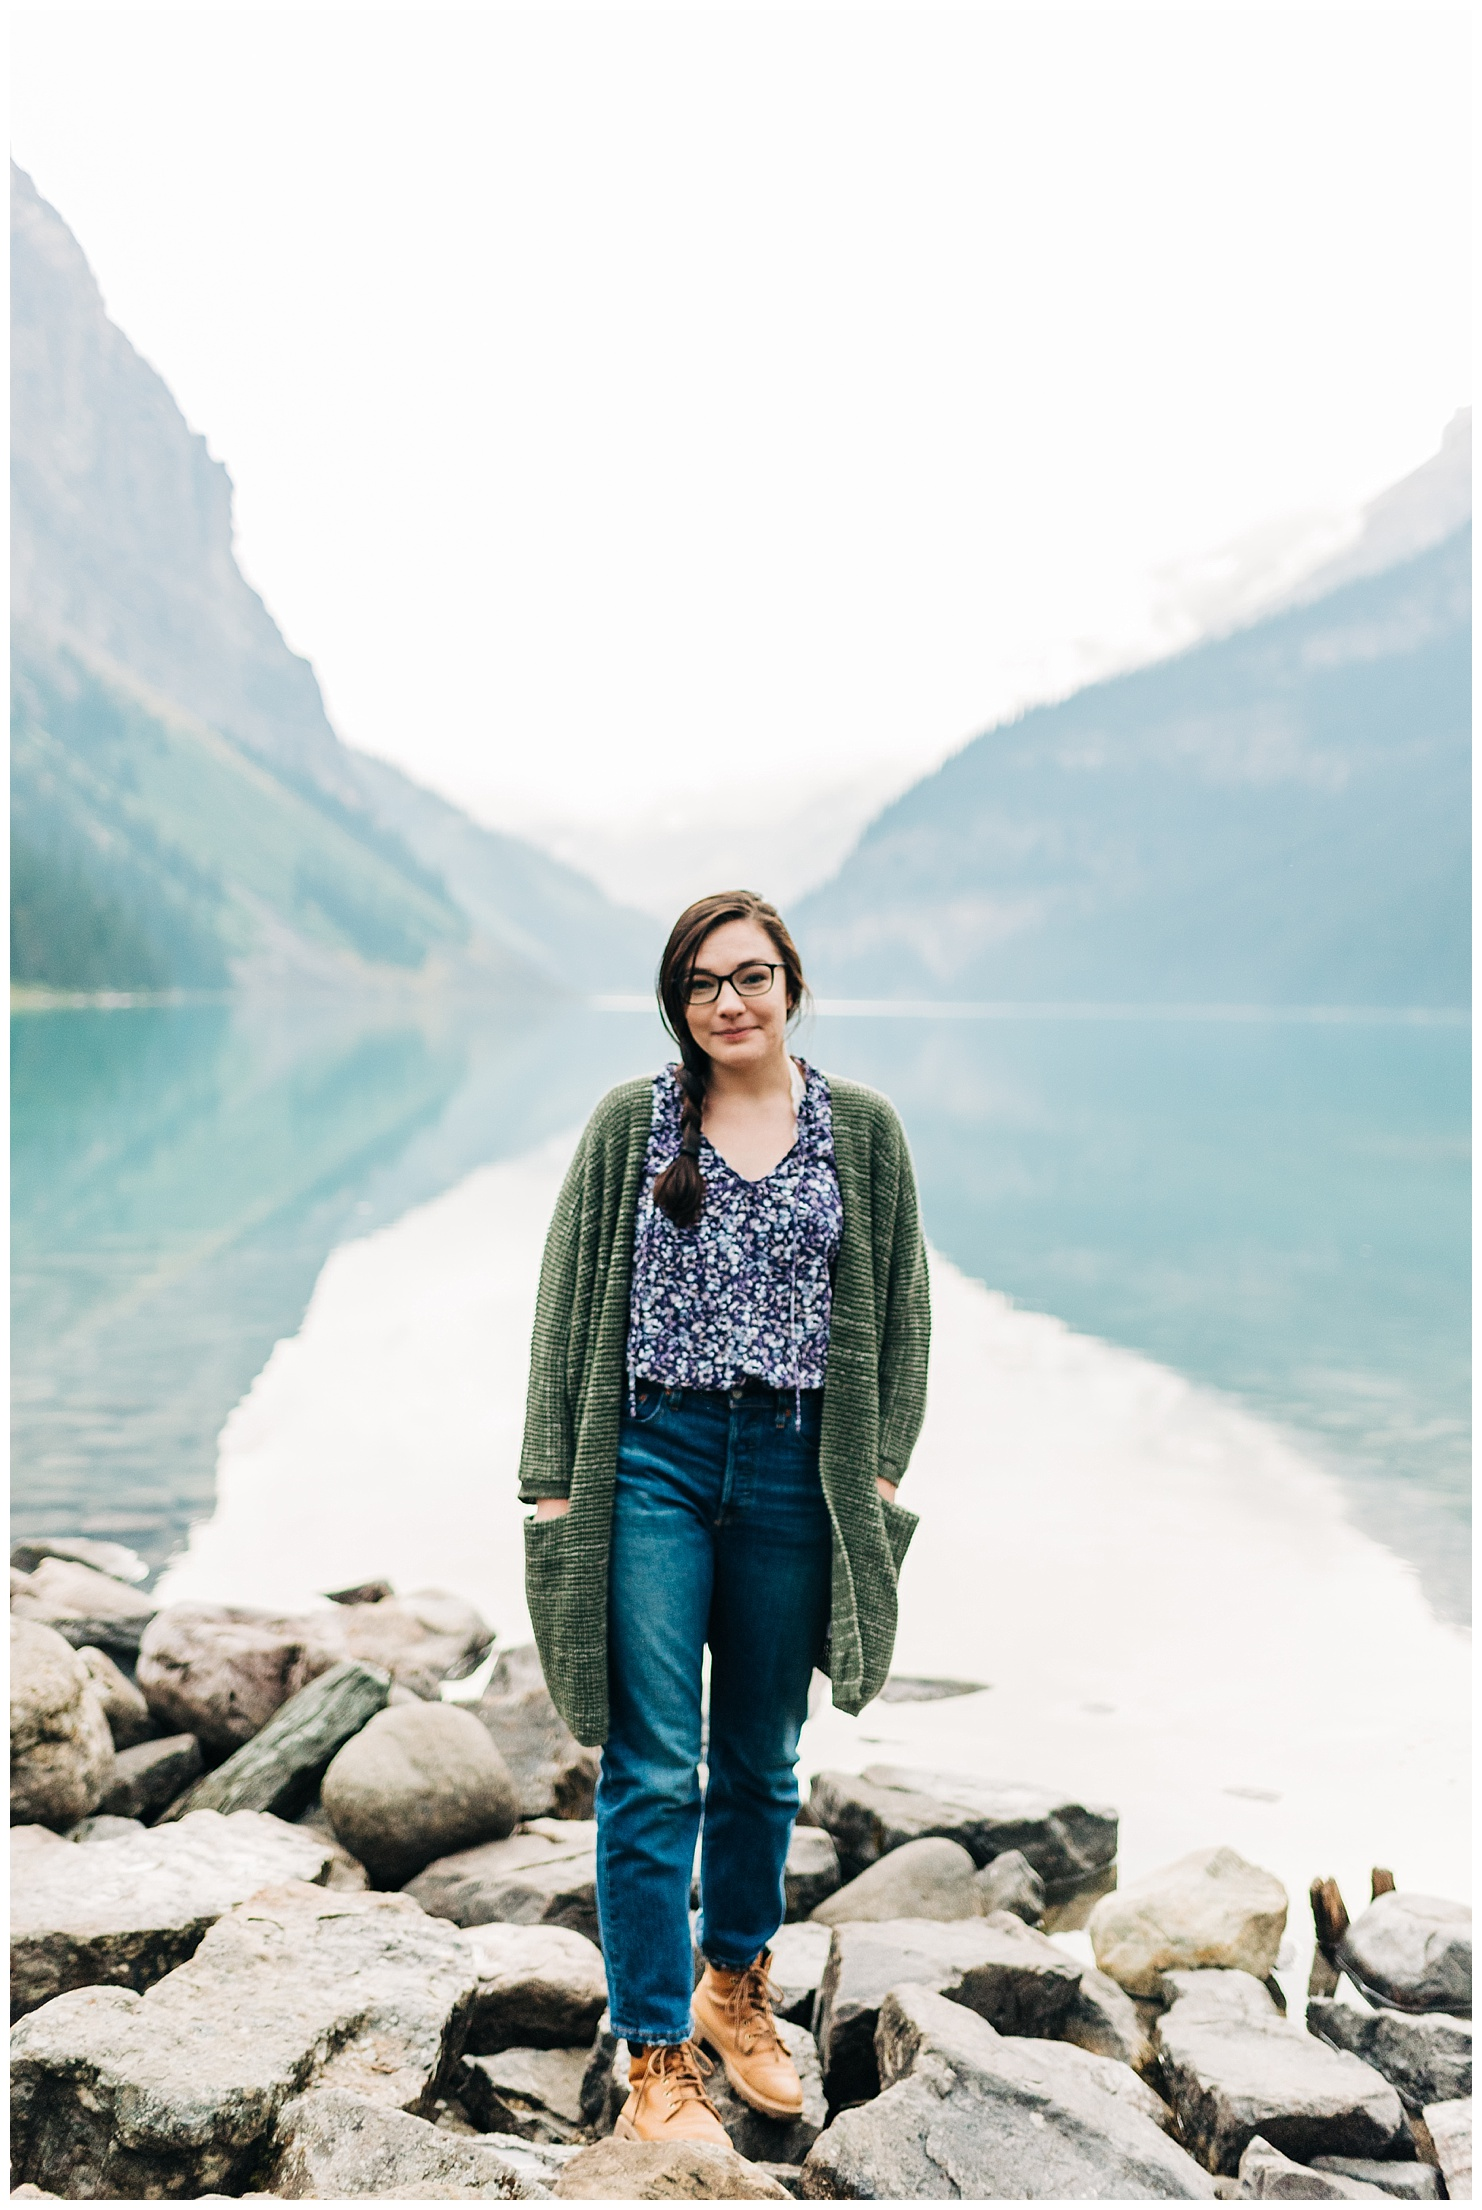 Laura of Forthright Photo, adventure wedding photographers, at Lake Louise in Banff National Park